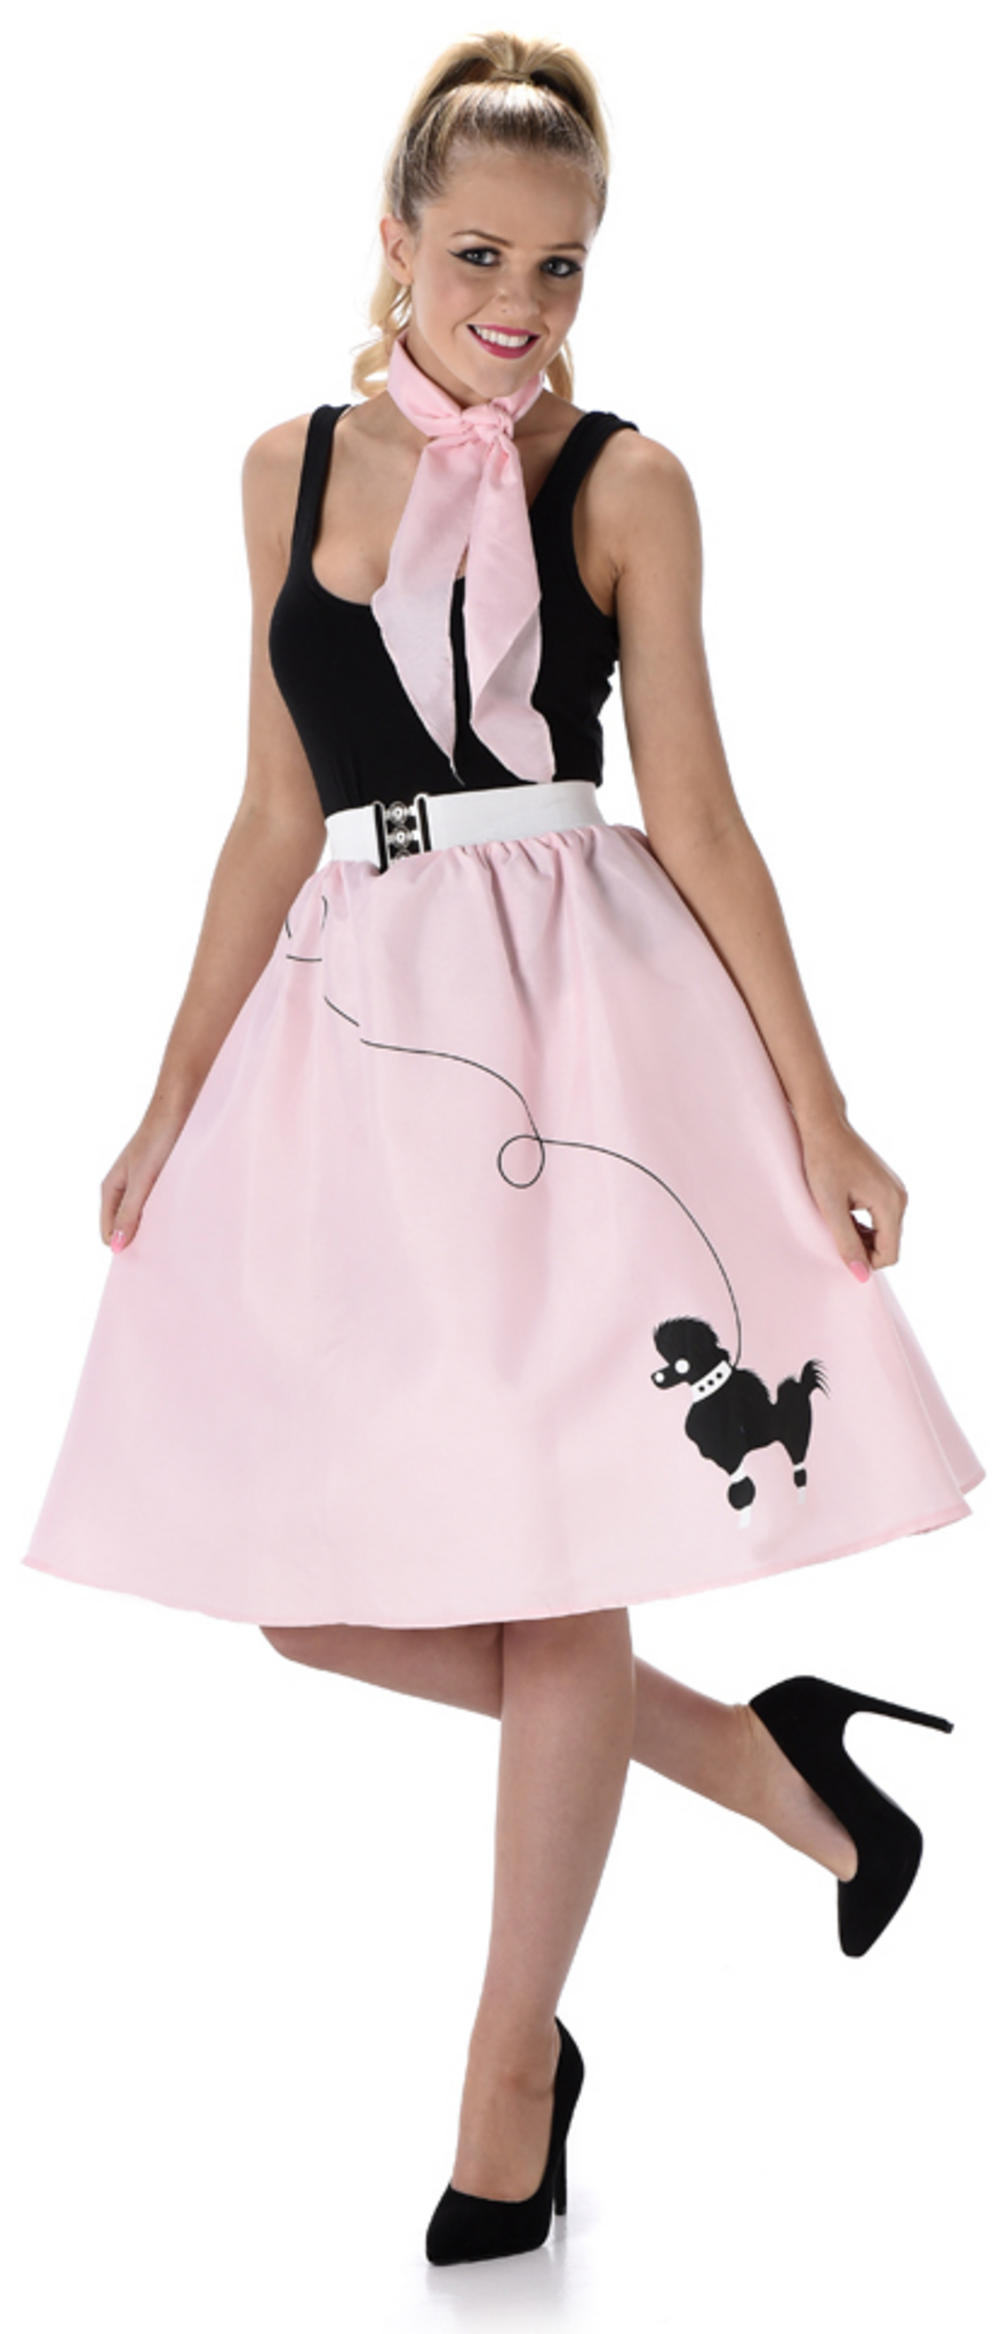 Baby Pink Poodle Skirt Ladies Costume